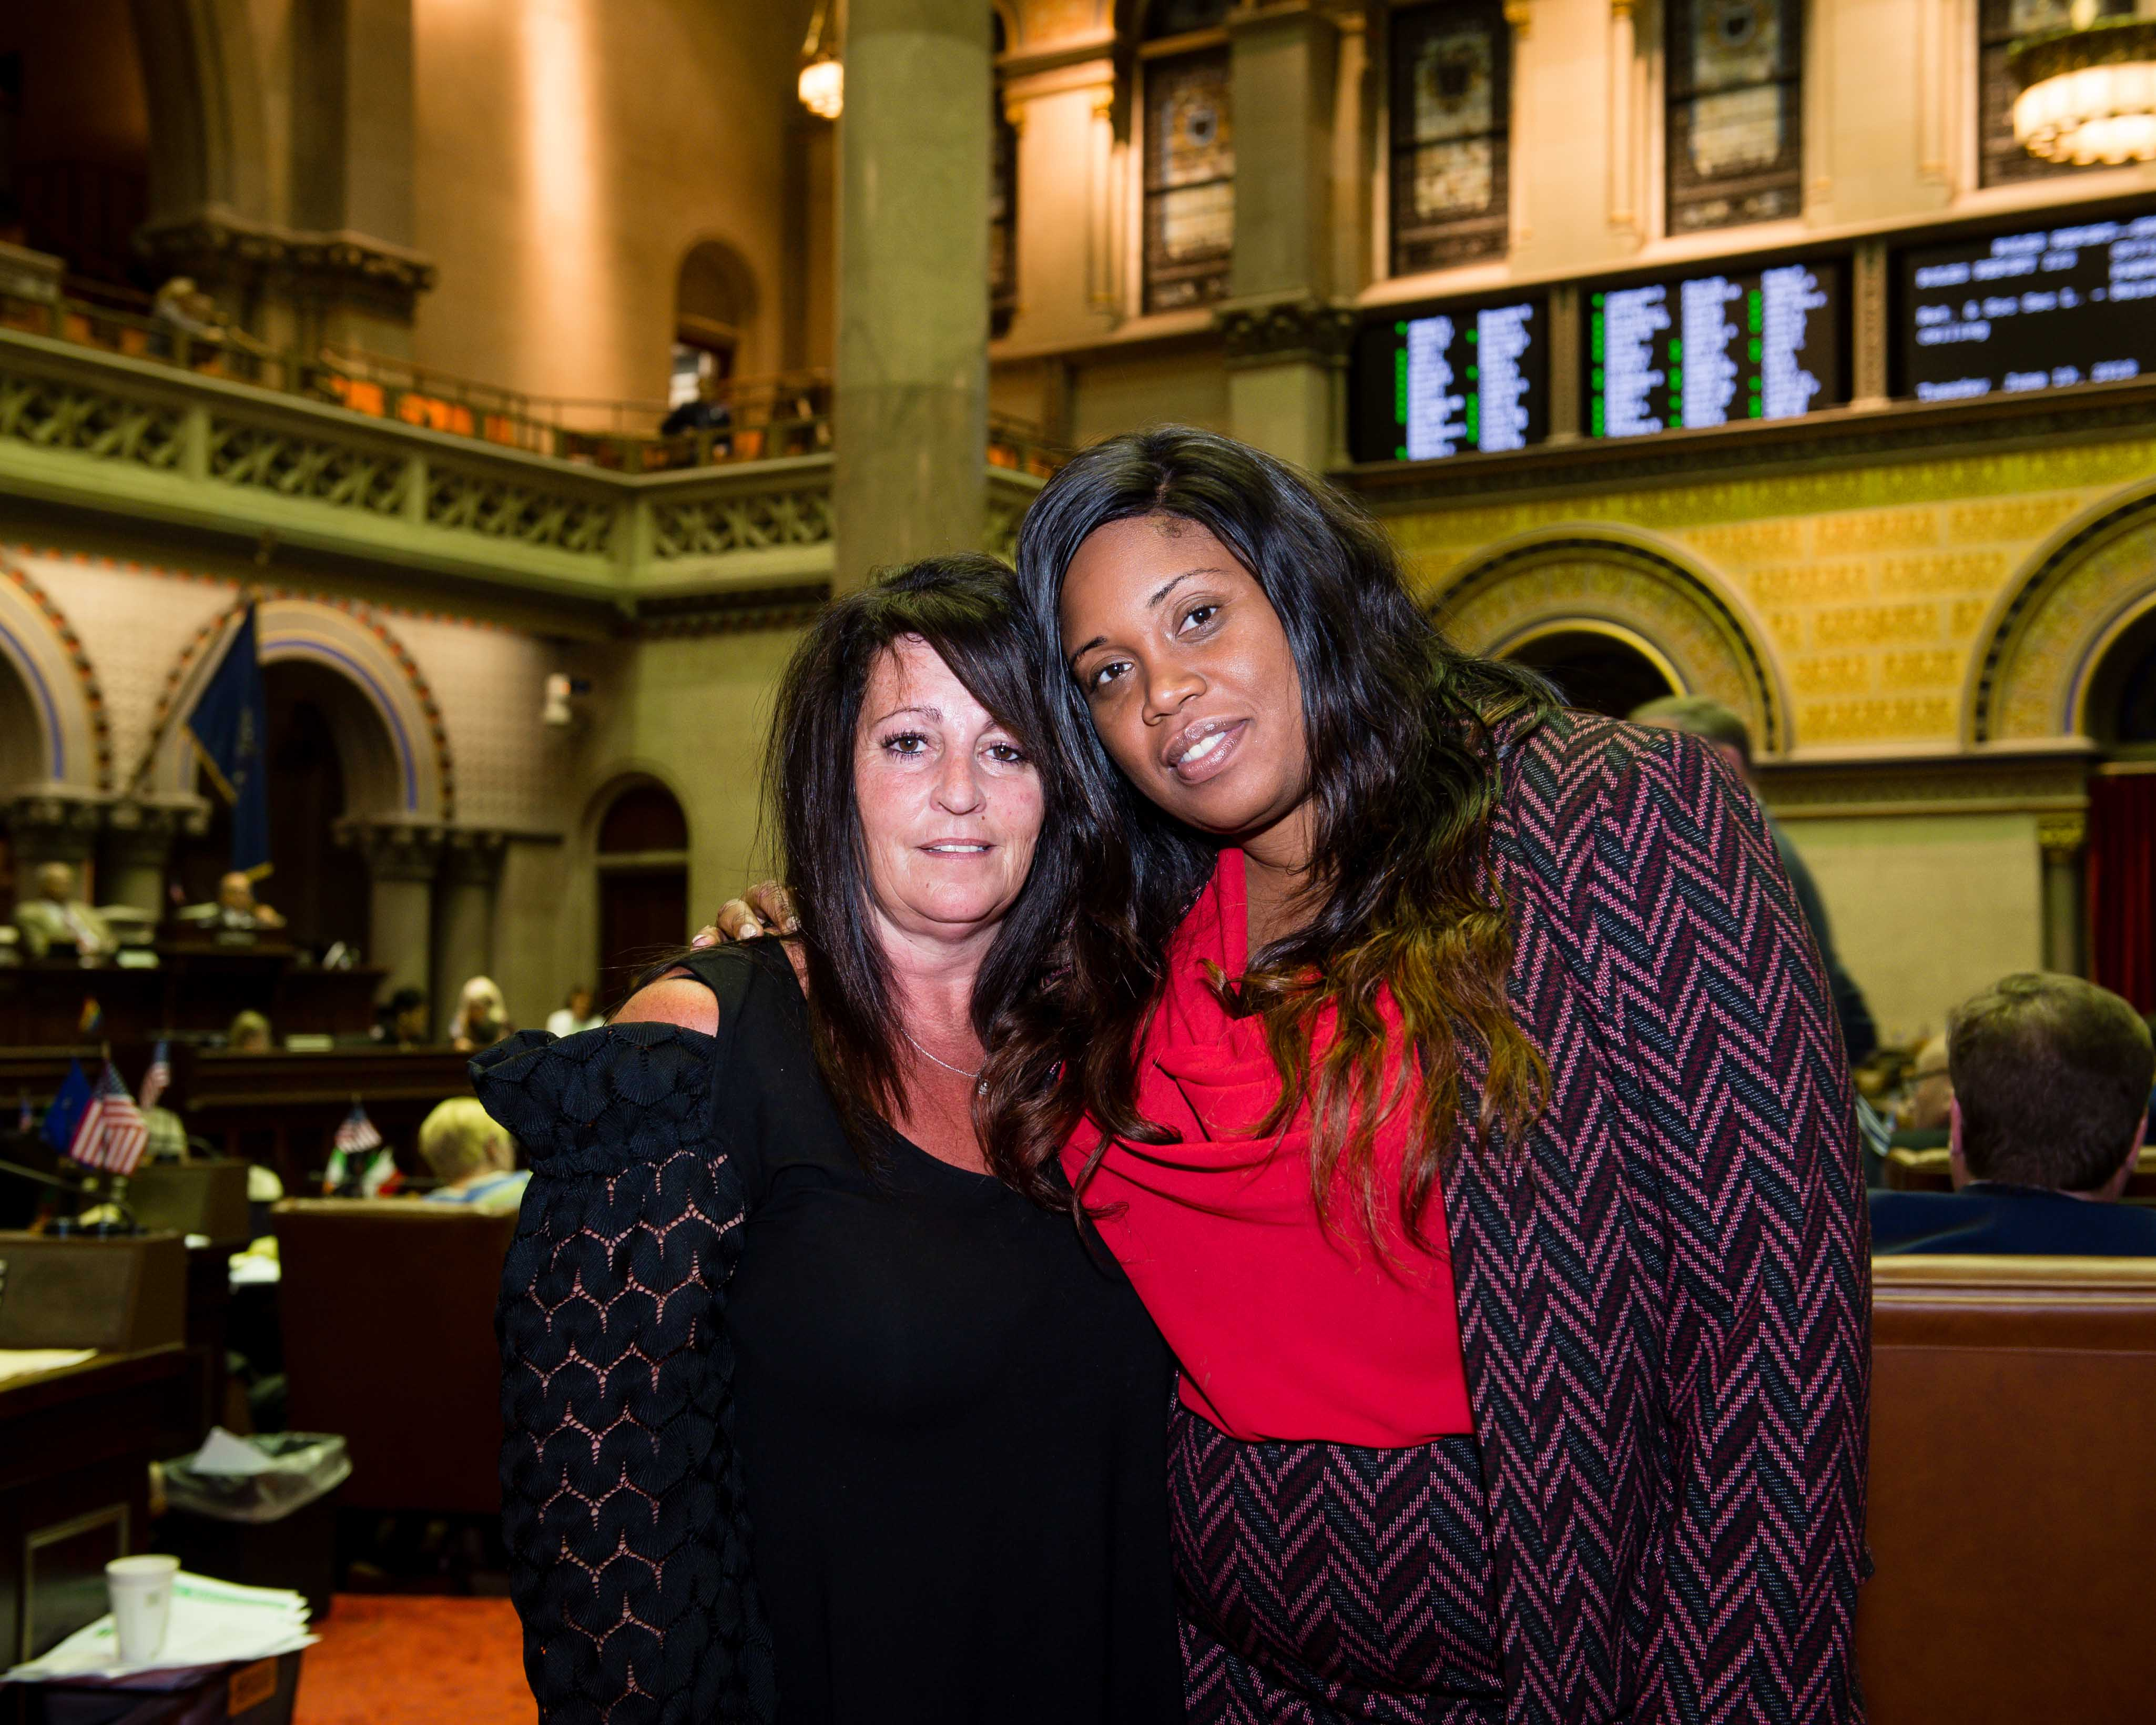 Assemblywoman Kimberly Jean-Pierre with Gina Lieneck, mother of Brianna Lieneck.